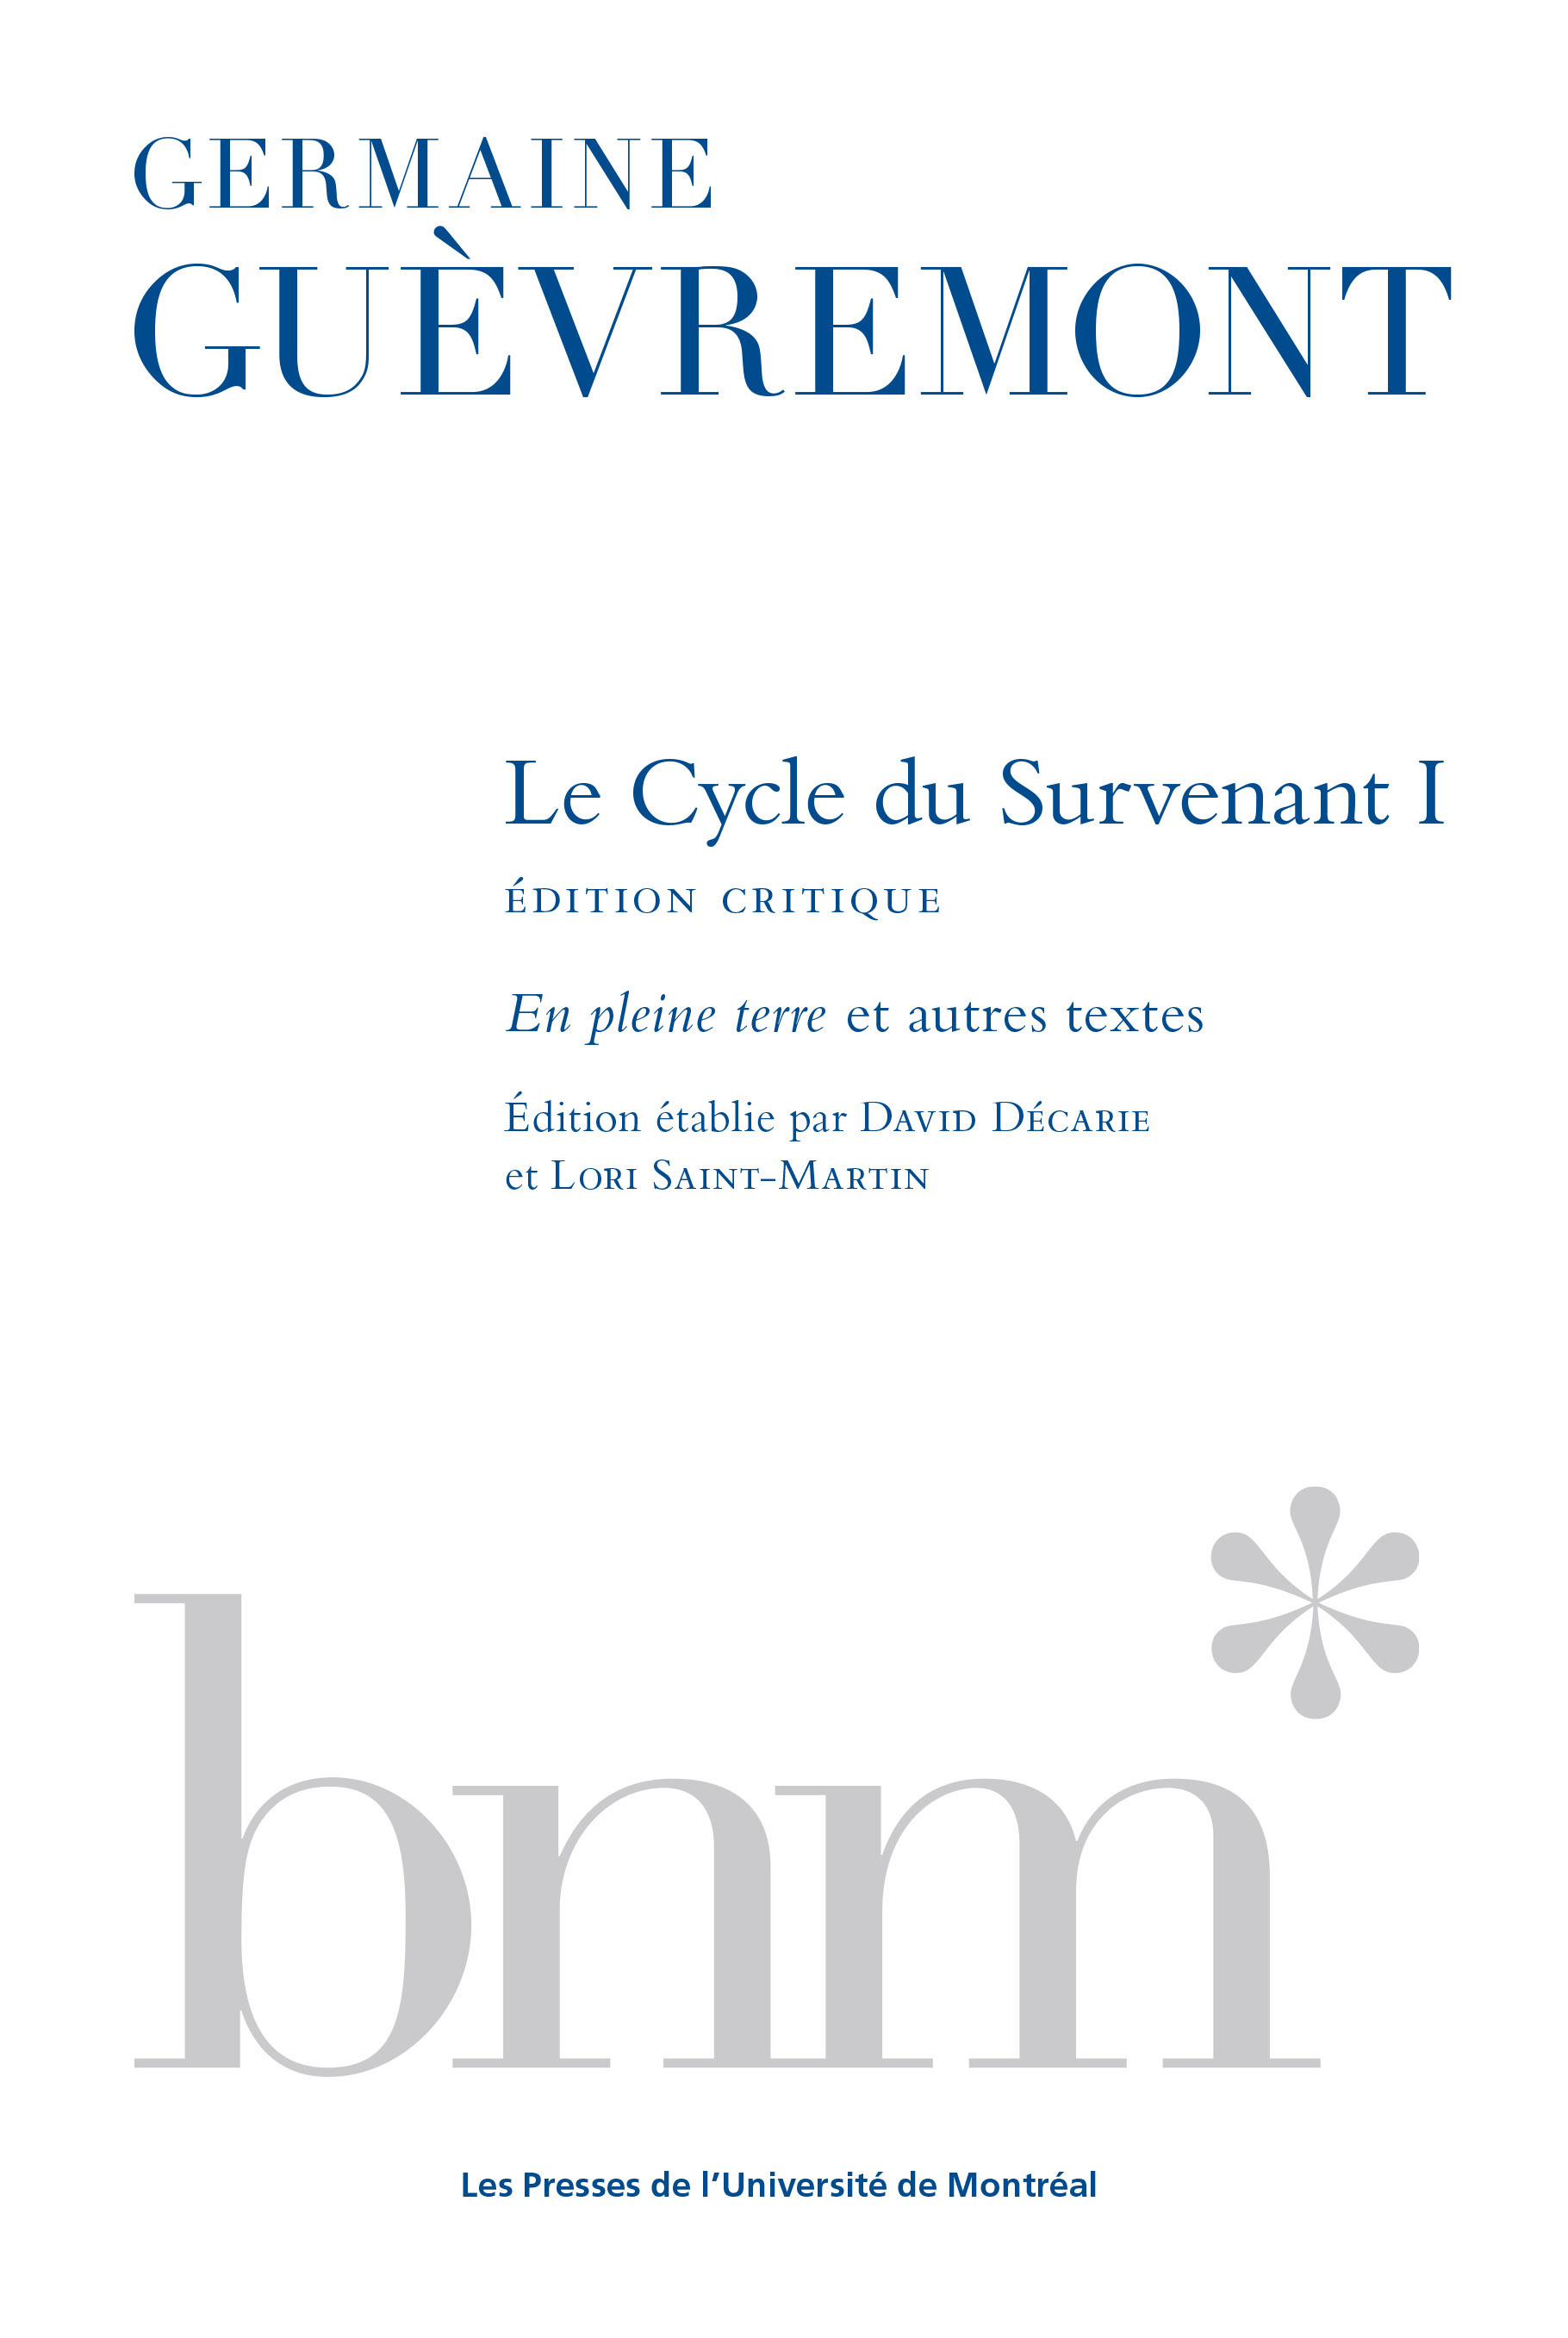 Le Cycle du Survenant 1, éd...